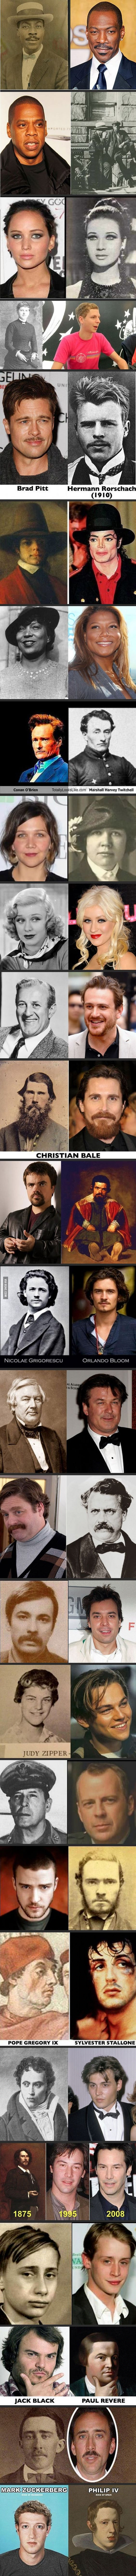 Celebrity Reincarnations?? much more celebrities Lookalikes! Amazing!! #lookalike via @9GAG #famous #look-alike: